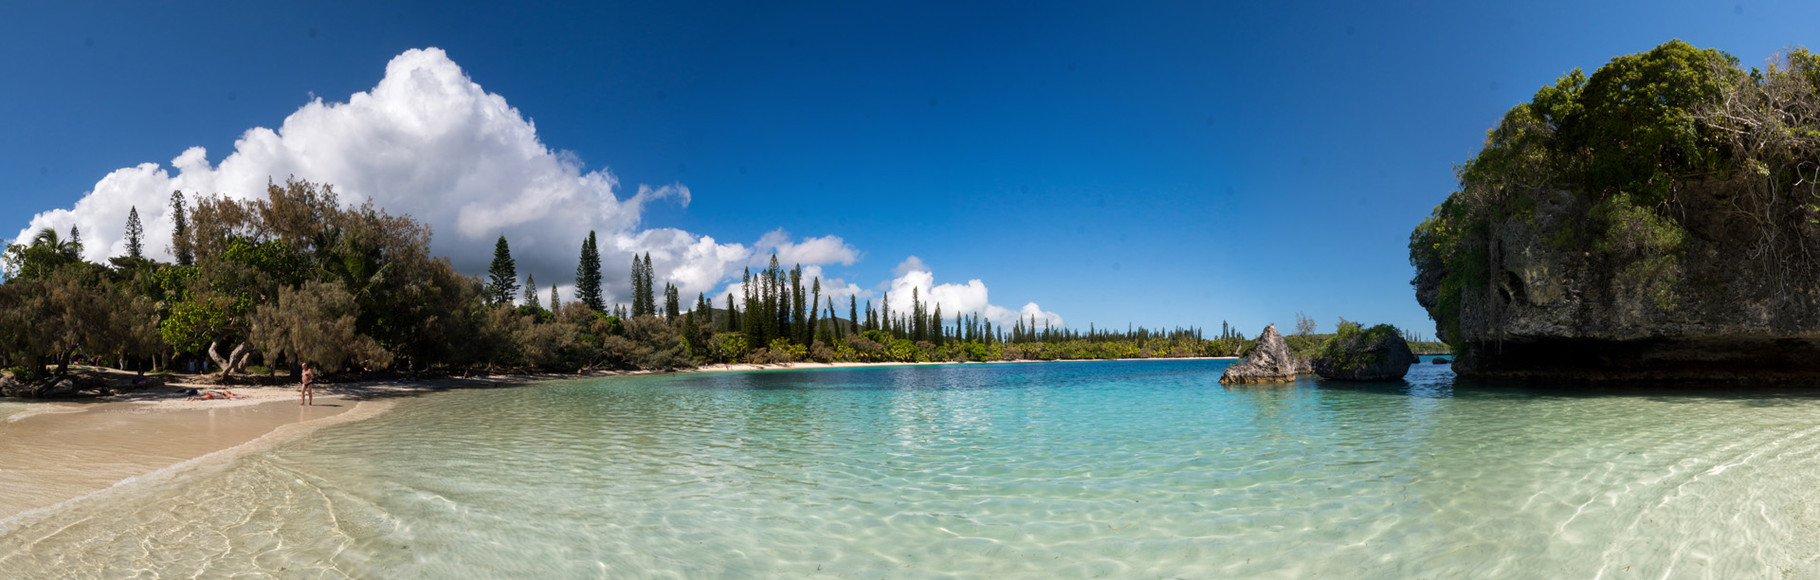 Kuto Bay, Isle of pines